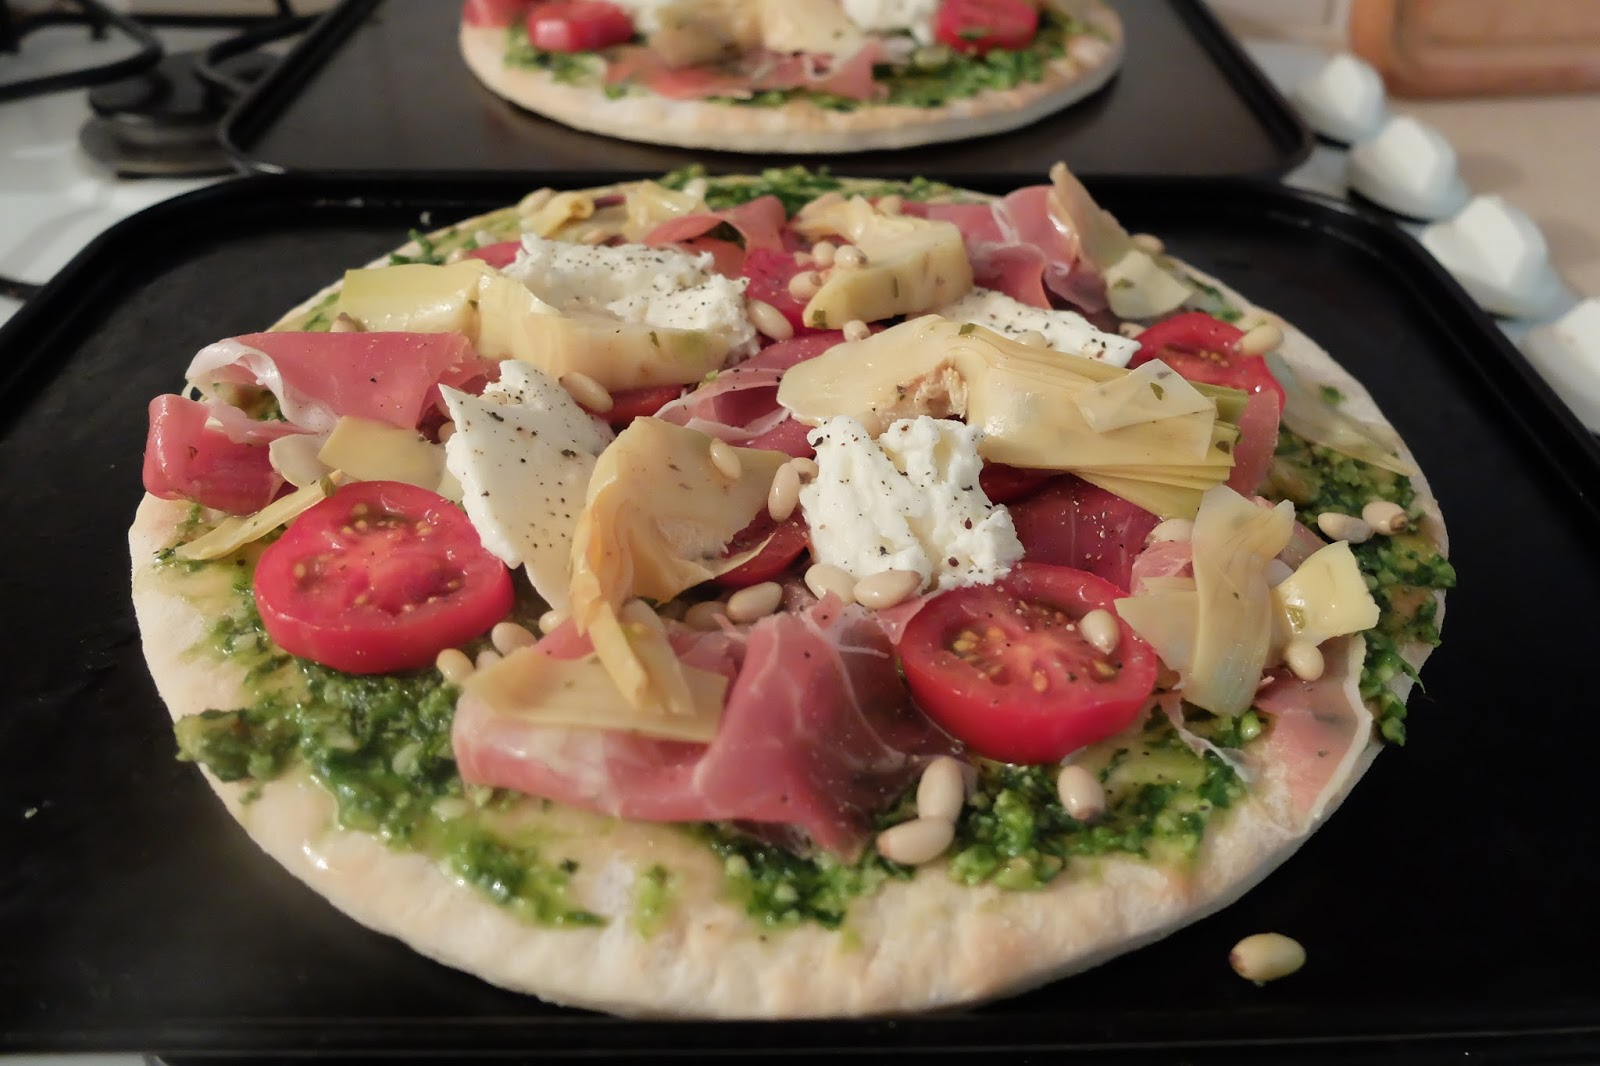 Artichoke, Mozzarella, Tomato, Pine nut, Parma Ham Pizza With Wild Garlic Pesto